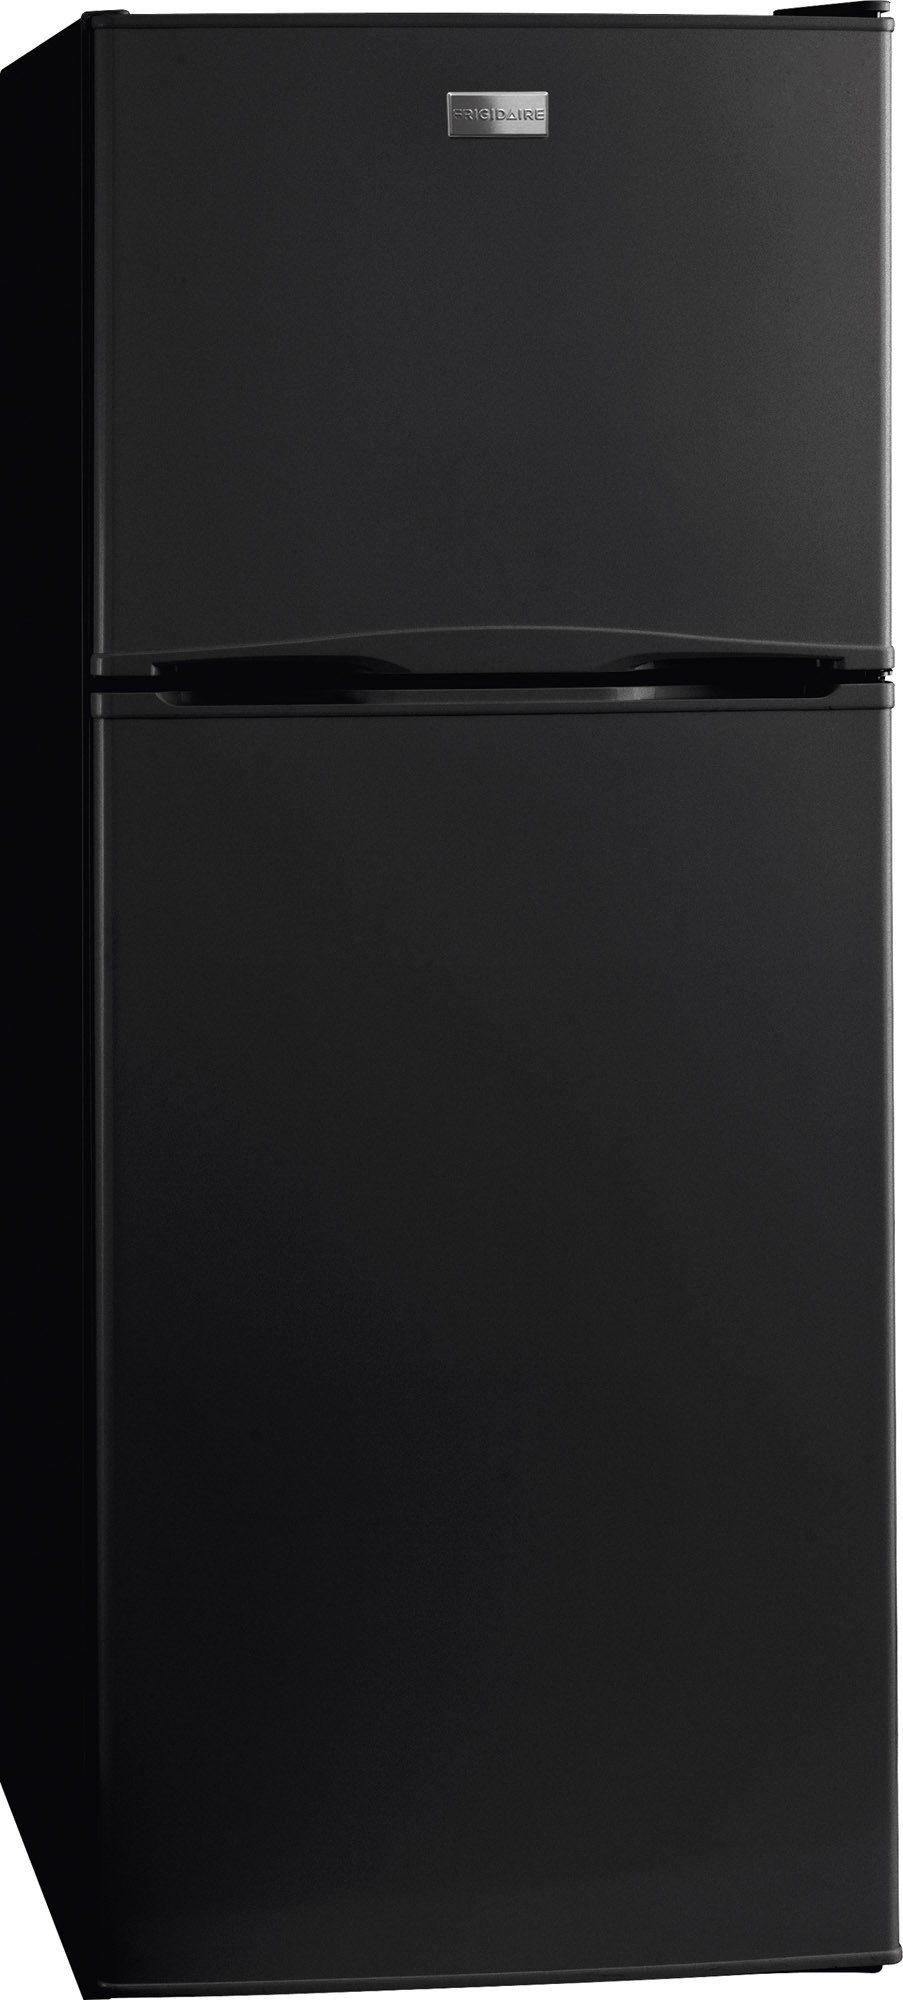 Countertop Ice Maker Ireland : Frigidaire FFTR1022QB 24 Inch Top-Freezer Refrigerator with 10.0 cu ...